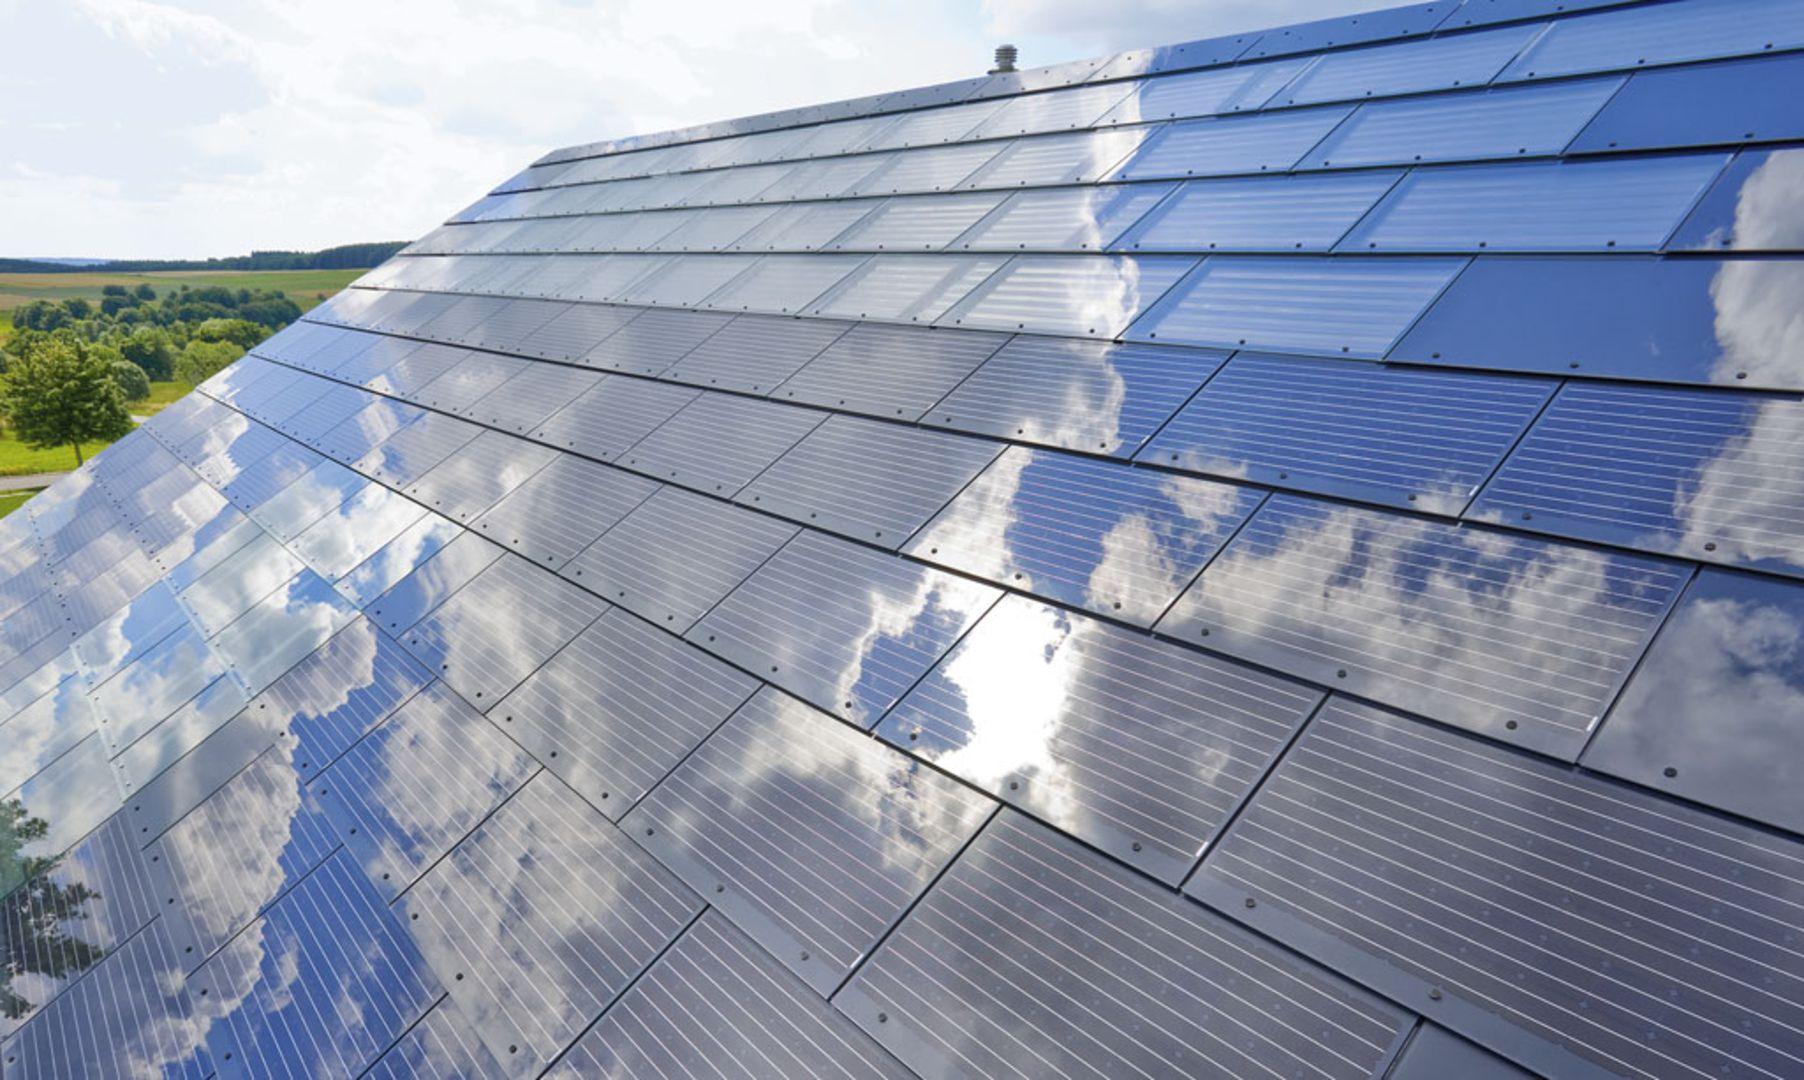 A New V-Shape Roof Can Collect Solar Power, Wind Power and Rain Water